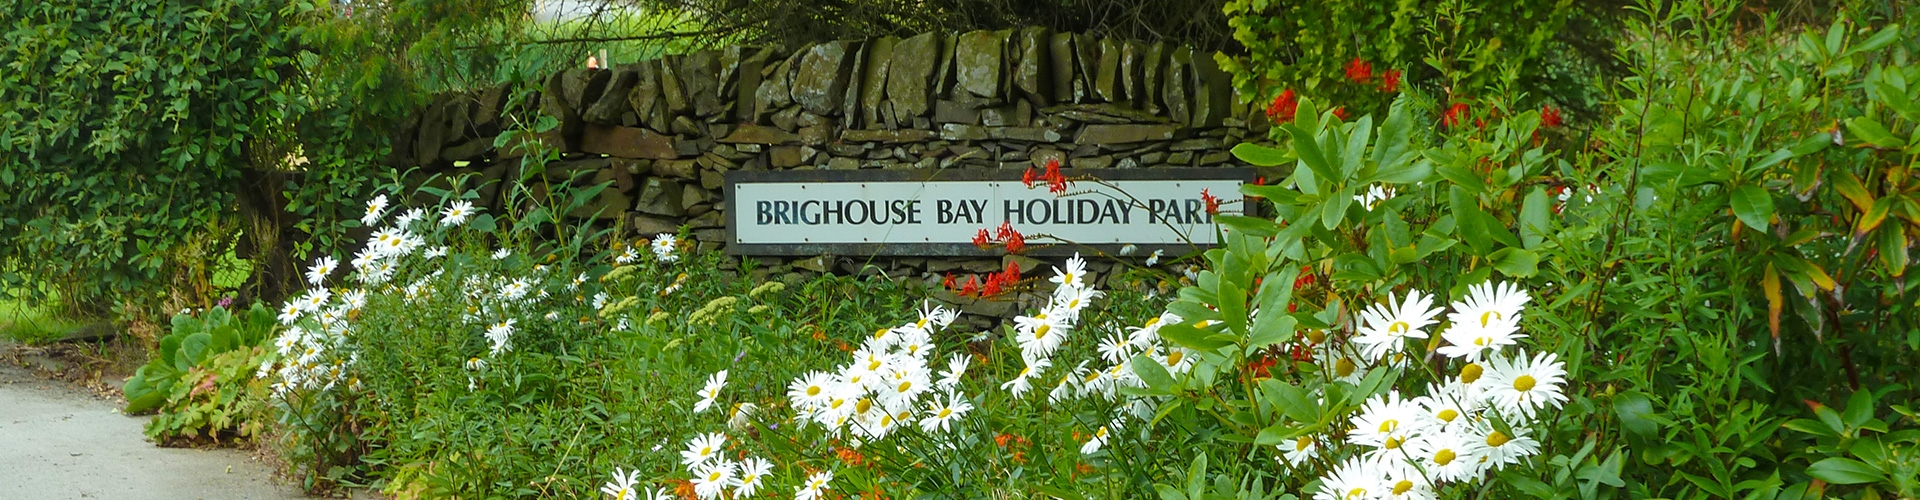 Brighouse Bay Holiday Park